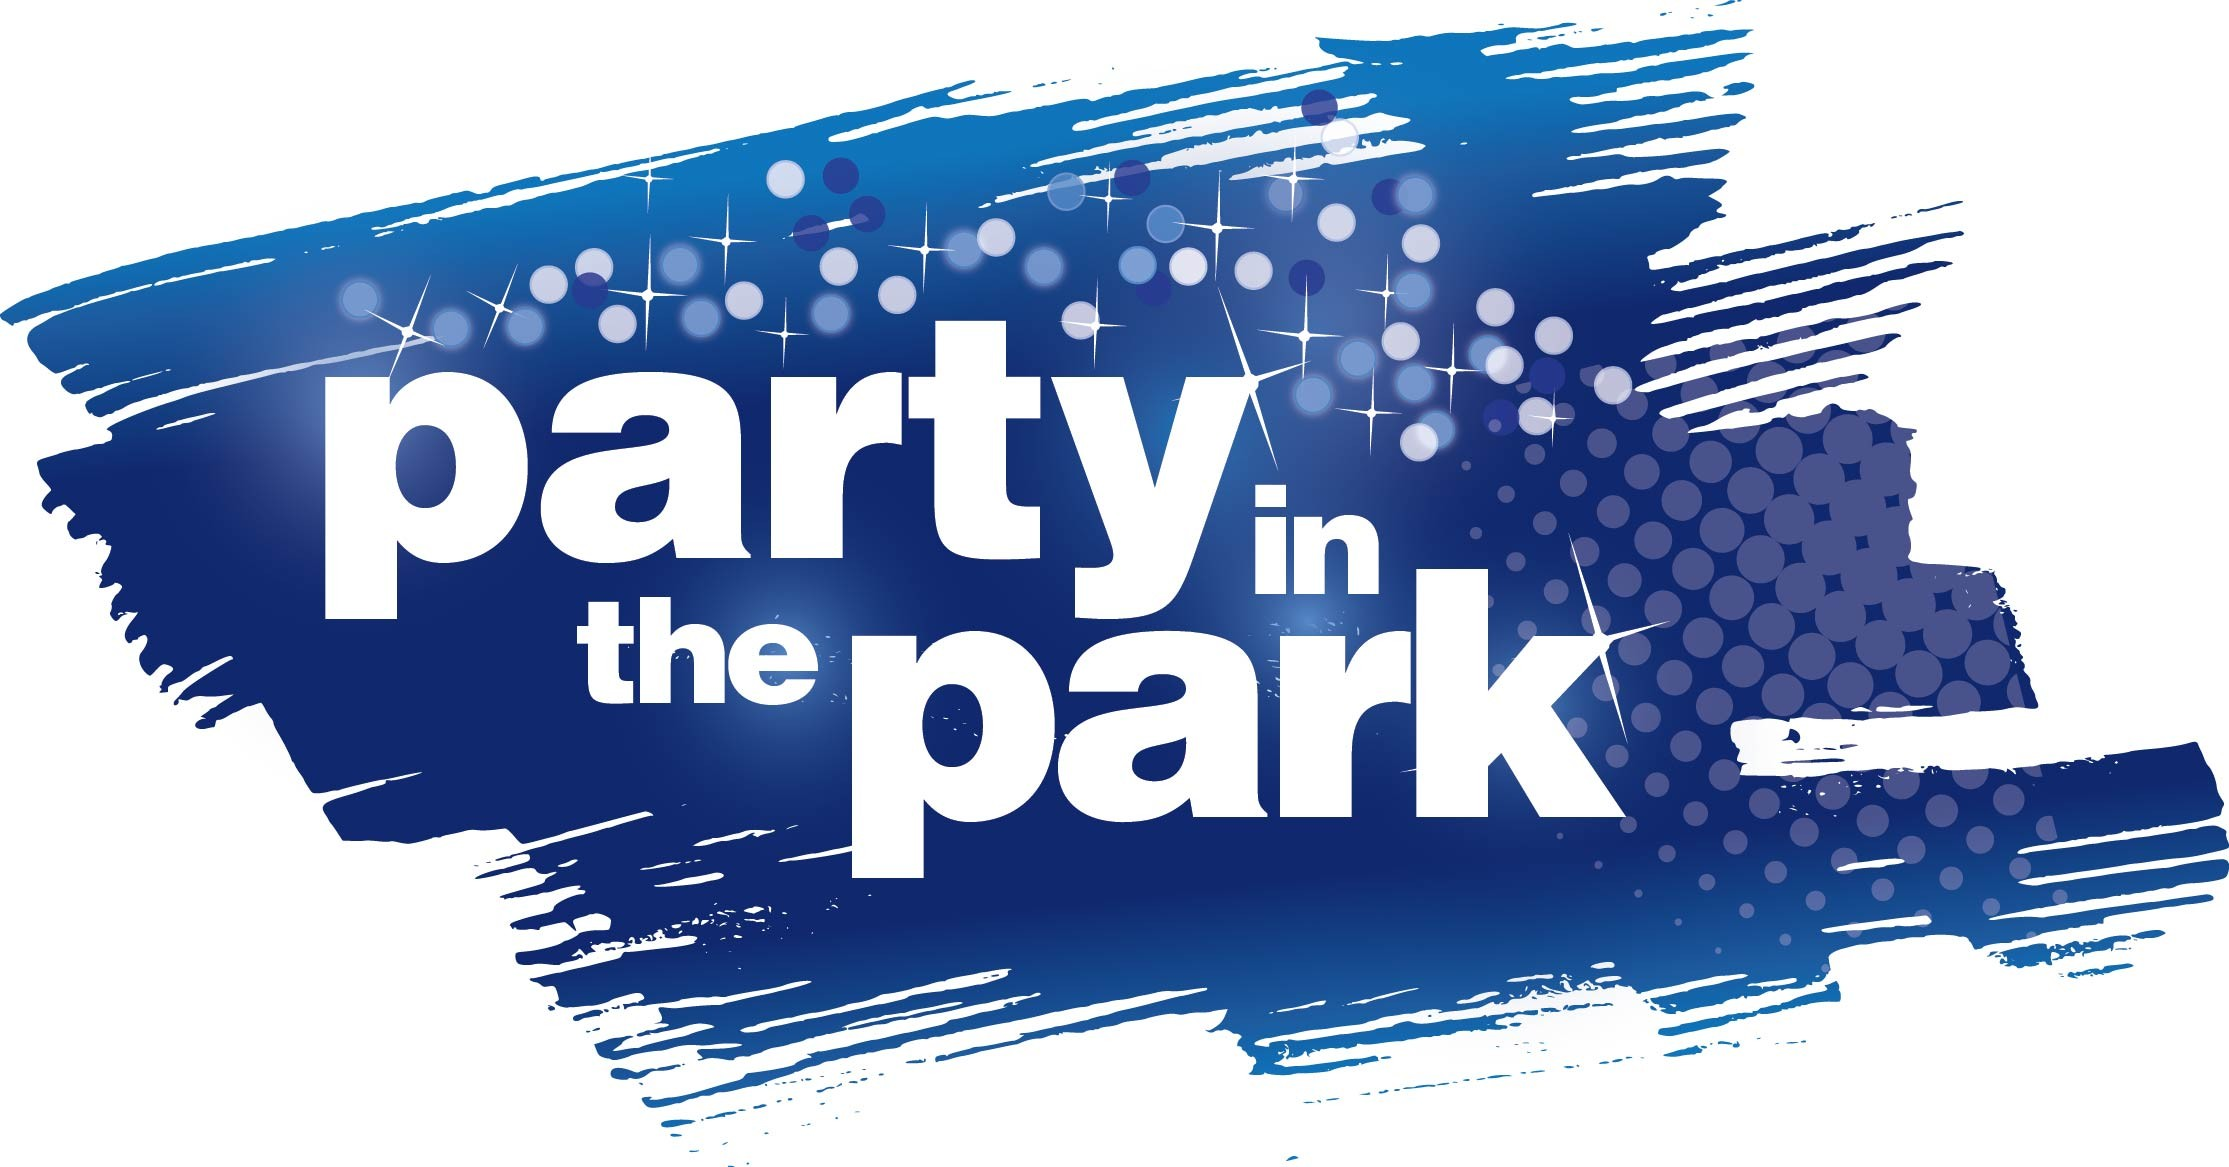 partyinthepark_2013-plain